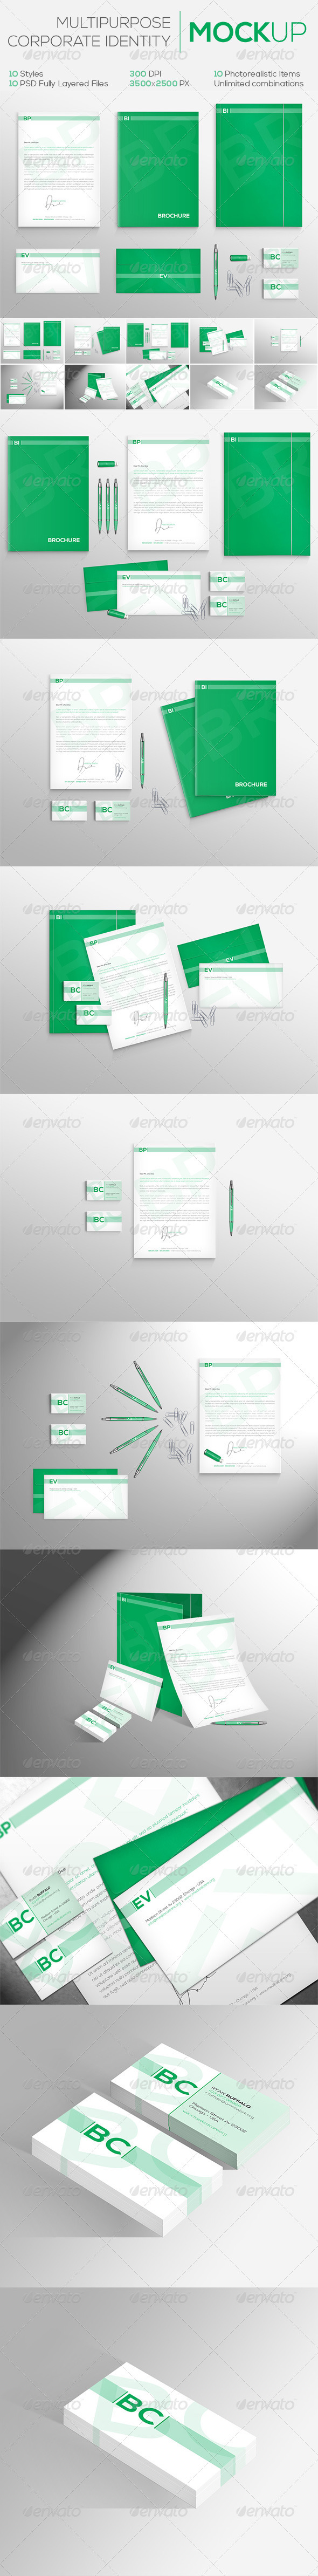 Multipurpose Corporate Identity MockUp | 10 Styles - Stationery Print